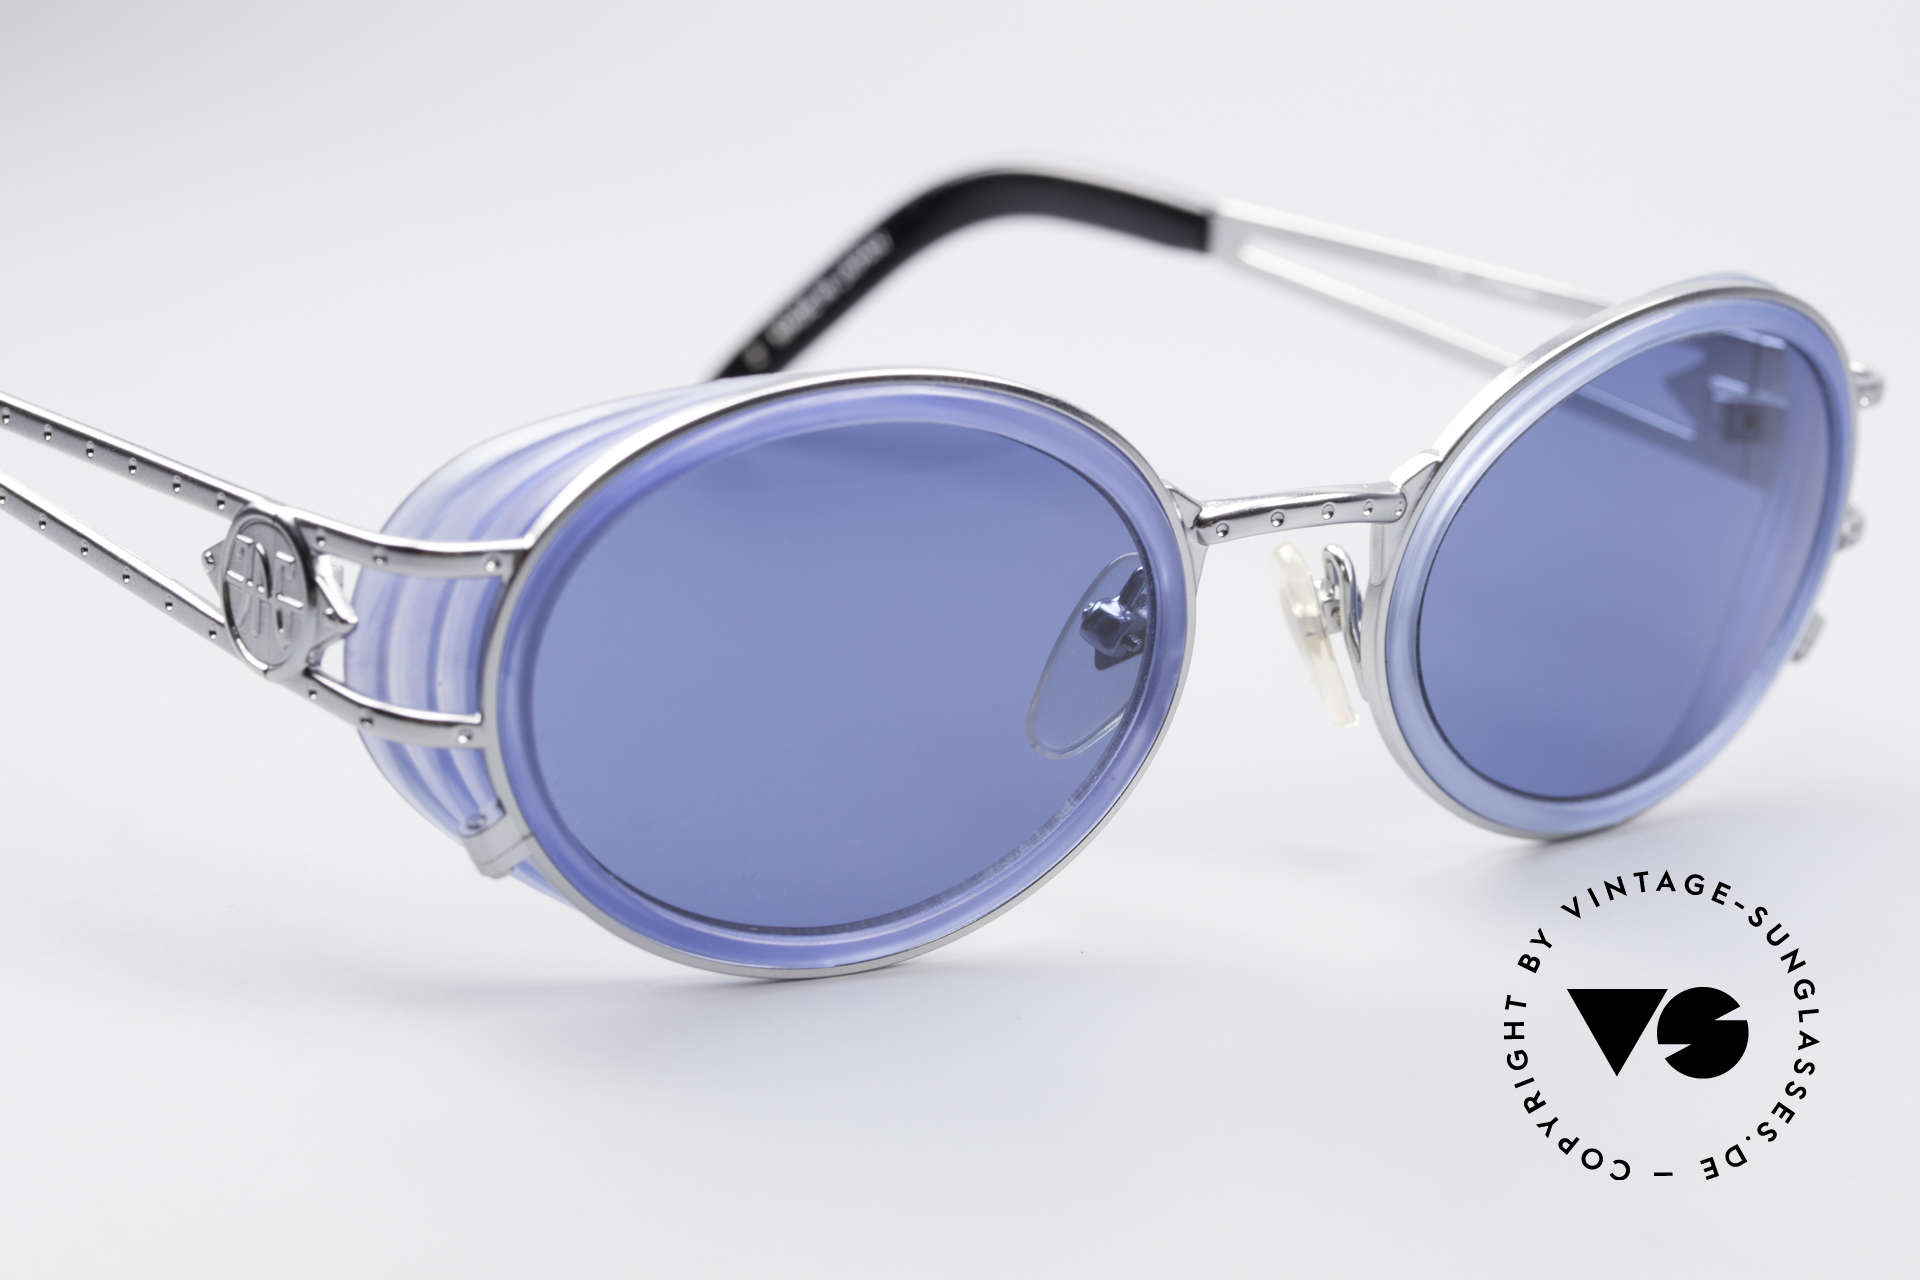 Jean Paul Gaultier 58-6202 Side Shields Vintage Shades, unworn original from 1998 with orig. JP Gaultier case, Made for Men and Women